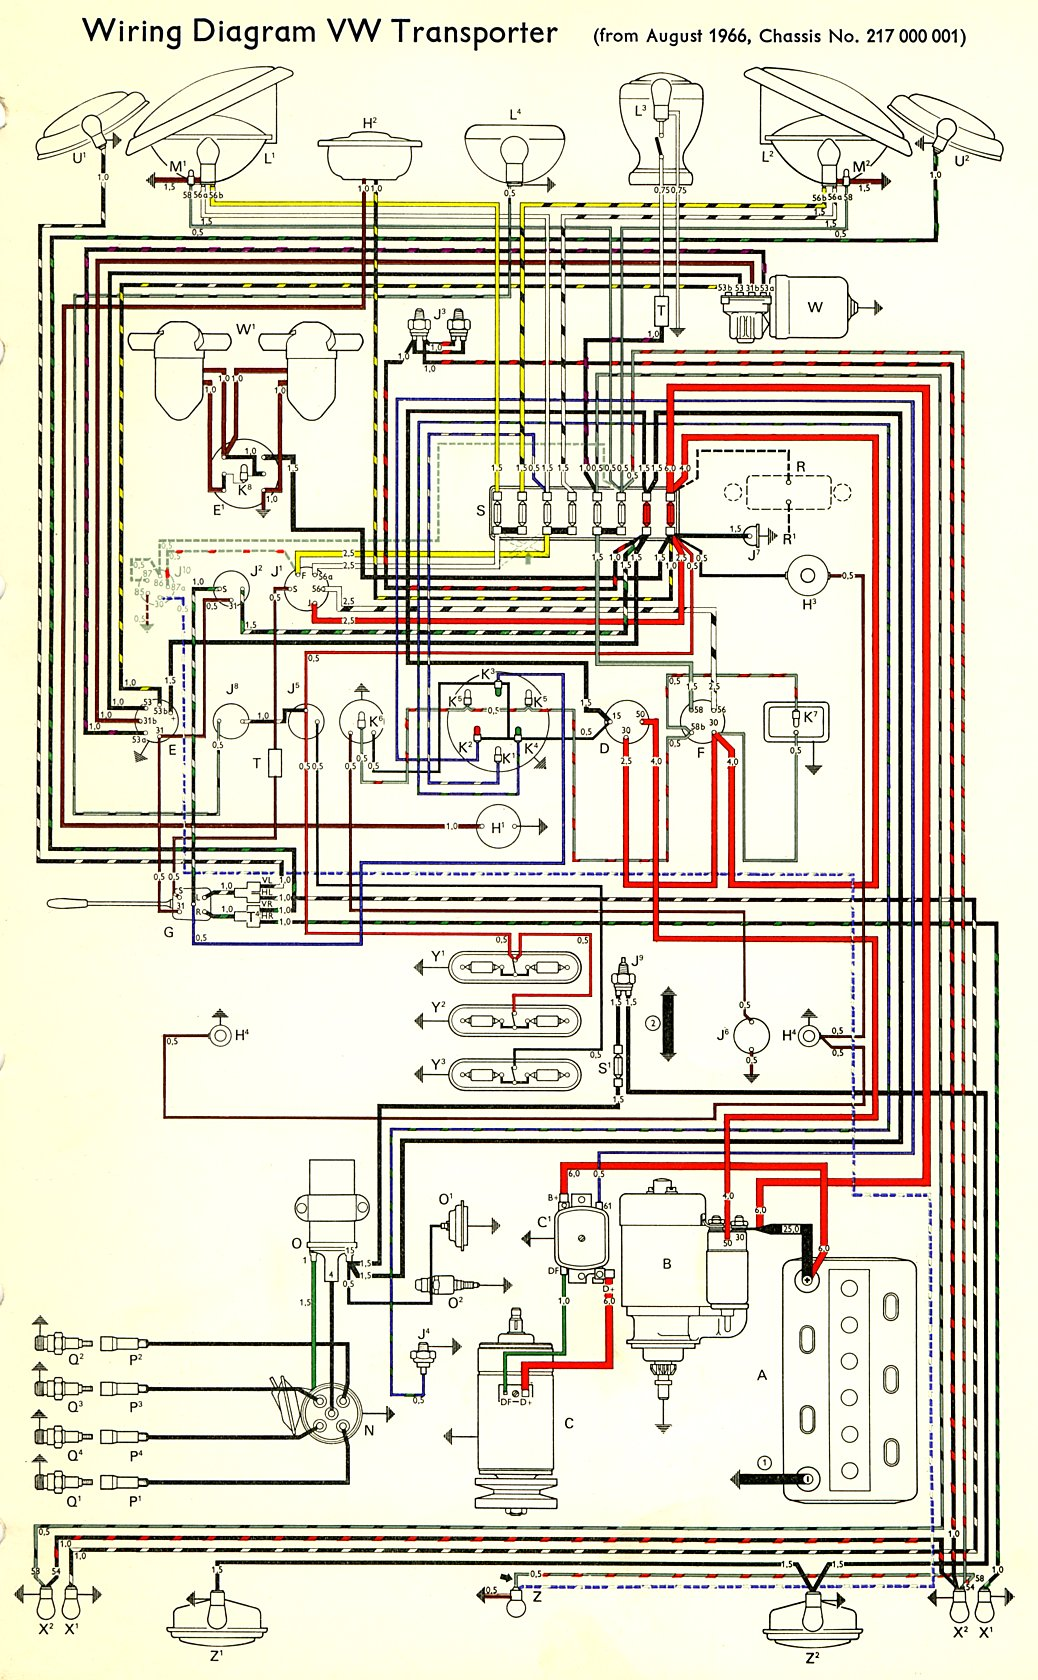 bus_67 67 vw bus wiring harness 71 vw wiring harness \u2022 wiring diagrams Wiring Harness Diagram at metegol.co